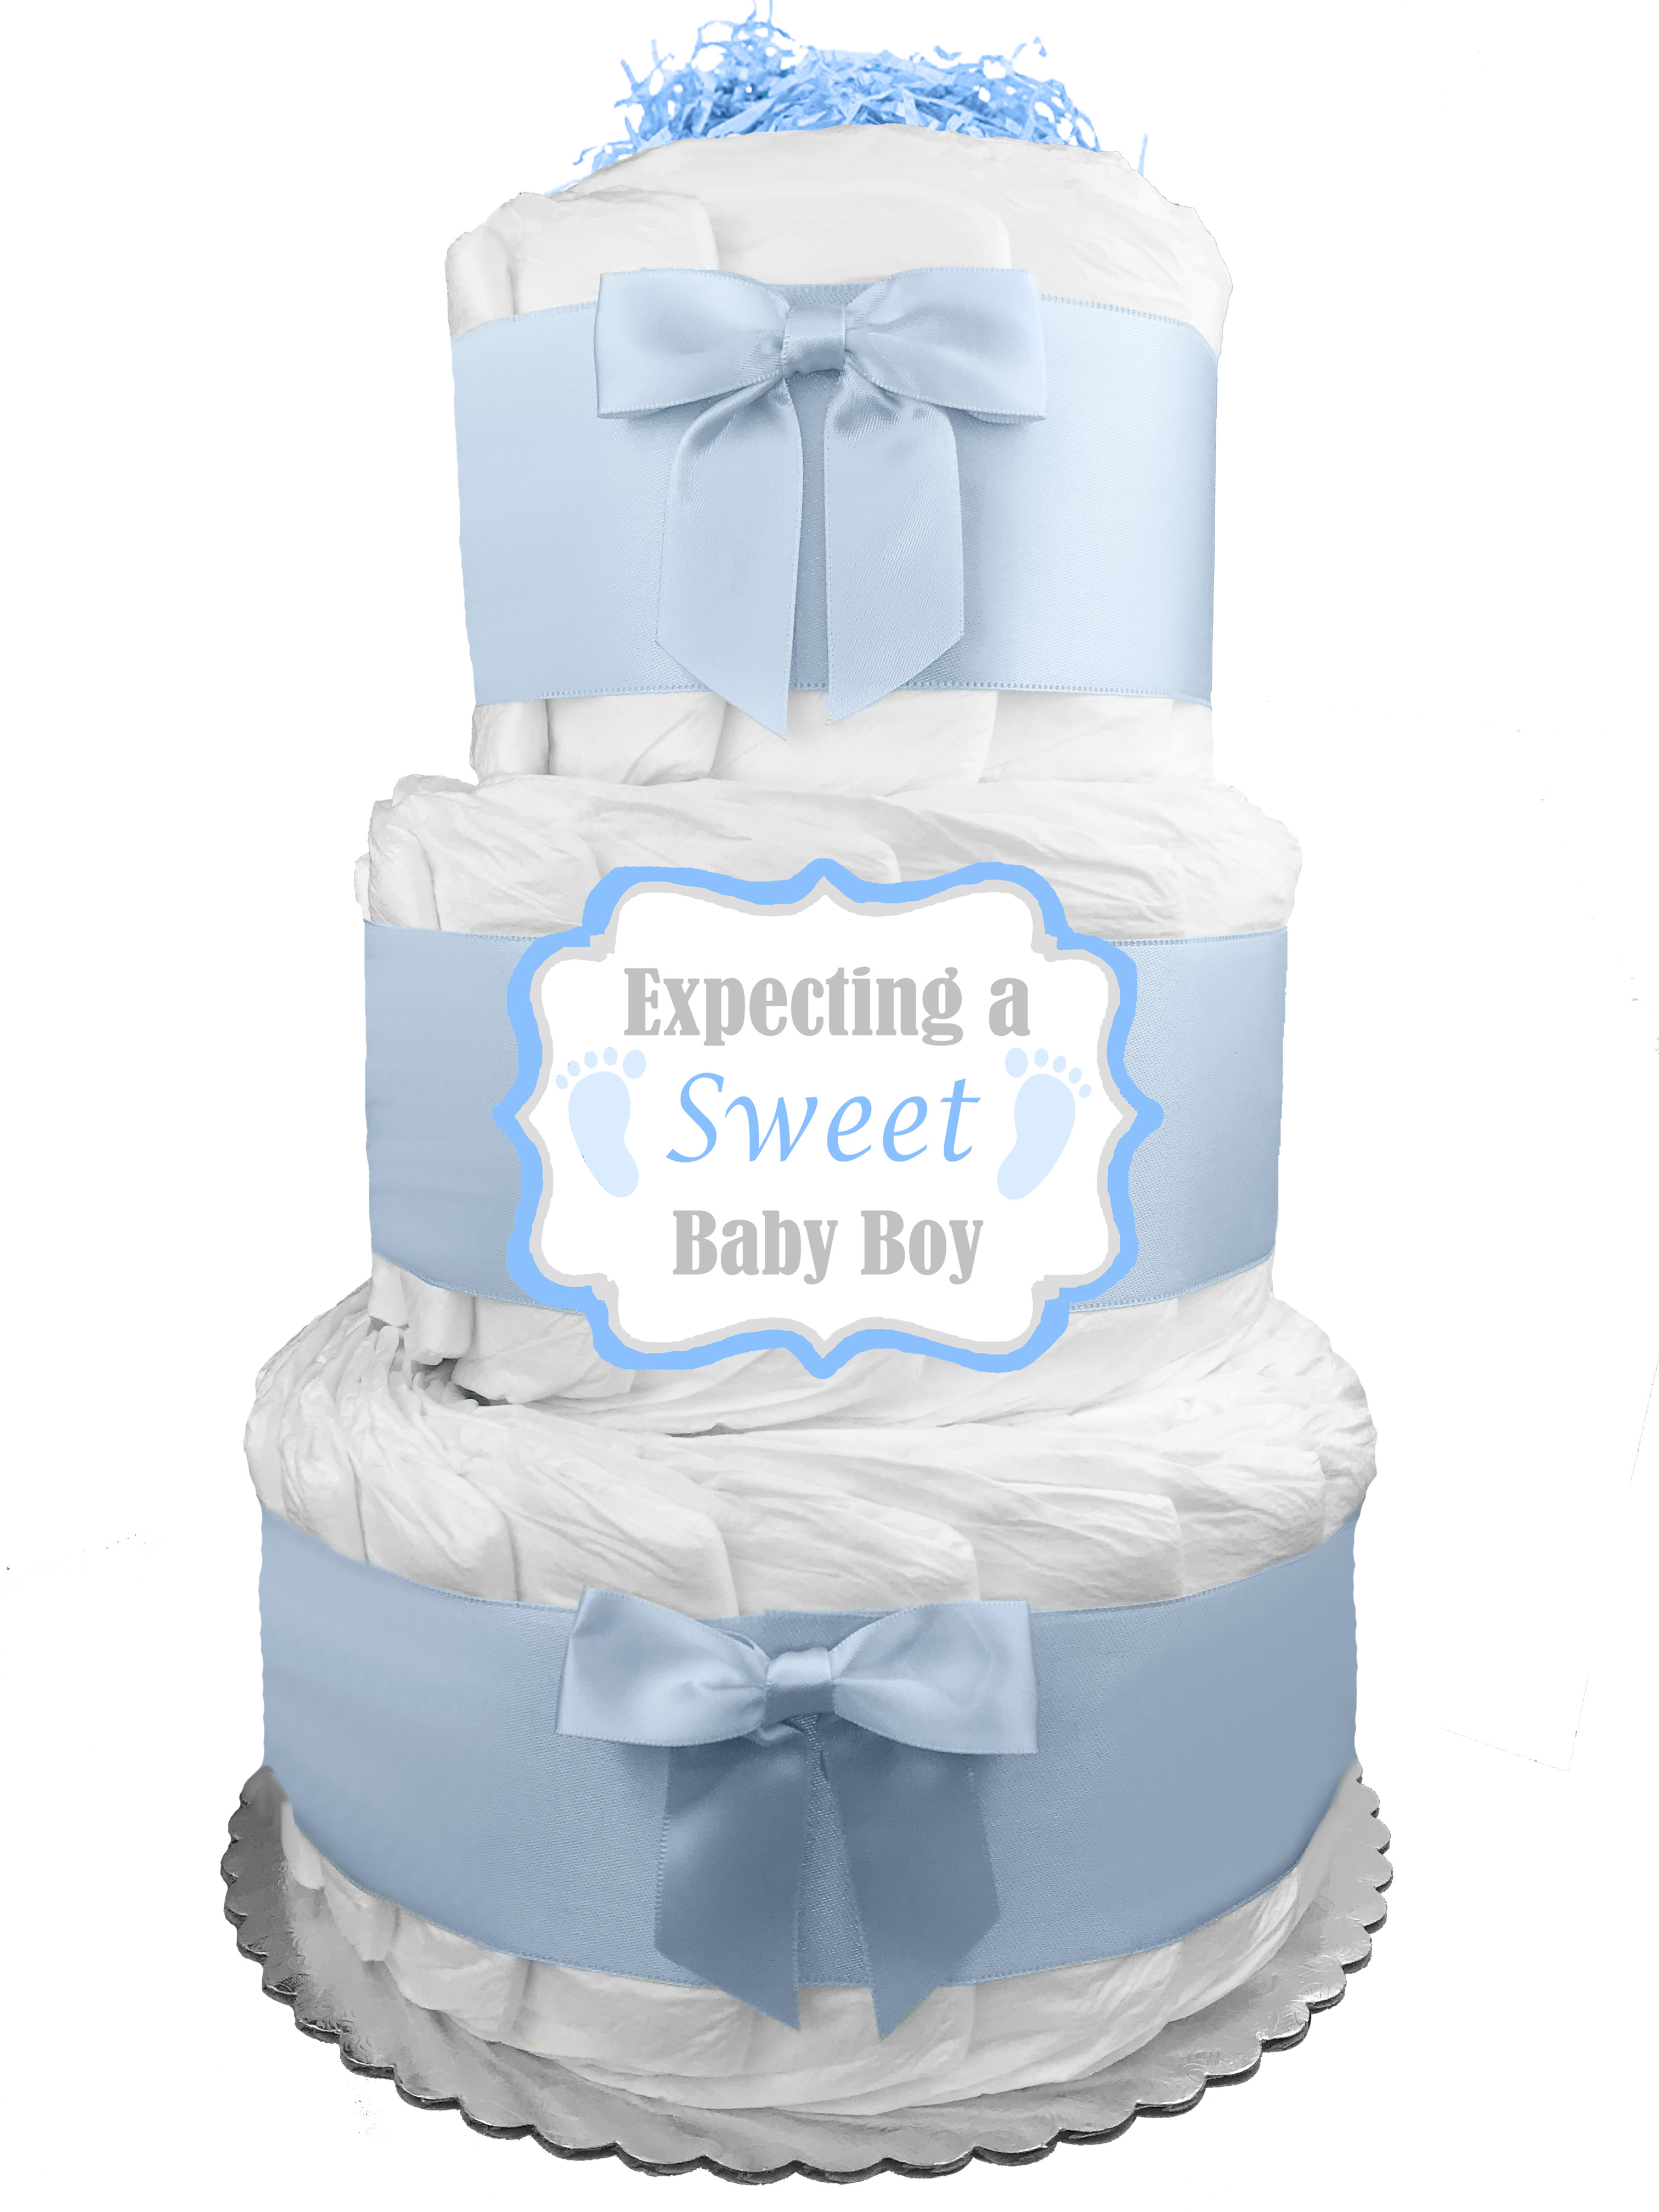 Purple White and Lace Diaper Cake Beautiful Bassinet Carriage Baby Shower Gift